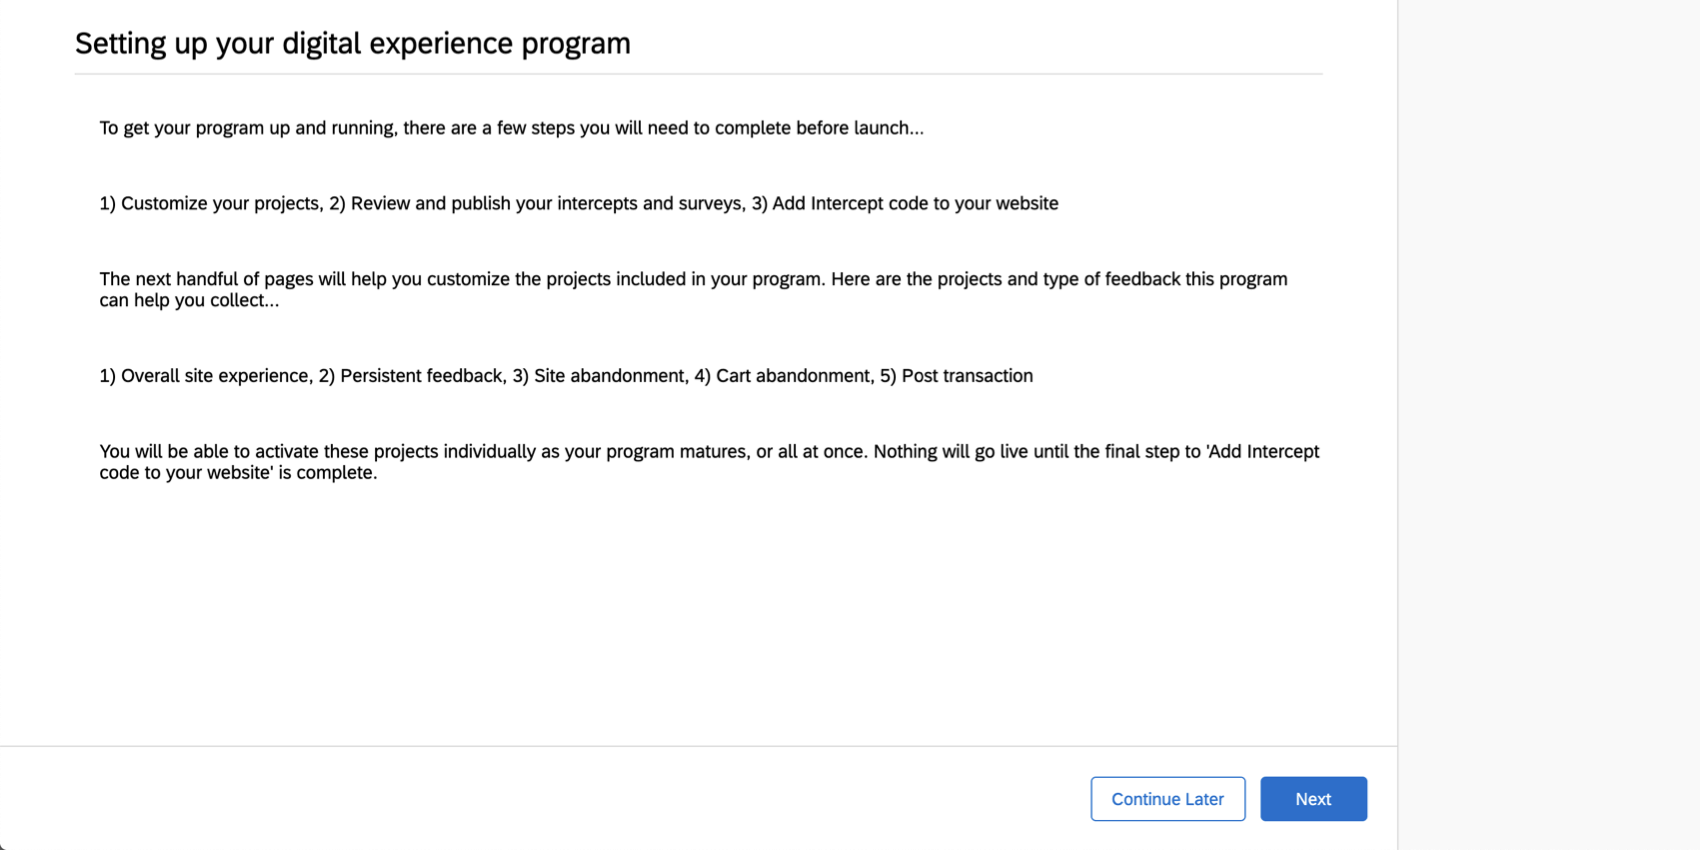 To get your program up and running, you need to compelte the following before launch: customize your project, review and publish your intercepts and surveys, and add intercept code to yor website. The next handful of pages will help you customize the projects in your program. Here are the projects and types of feedback this program can help you collect: overall site experience, persistent feedback, site abandonment, cart abandonment, and post transaction. Nothing will go live until the final step to add intercept code to your website is complete.